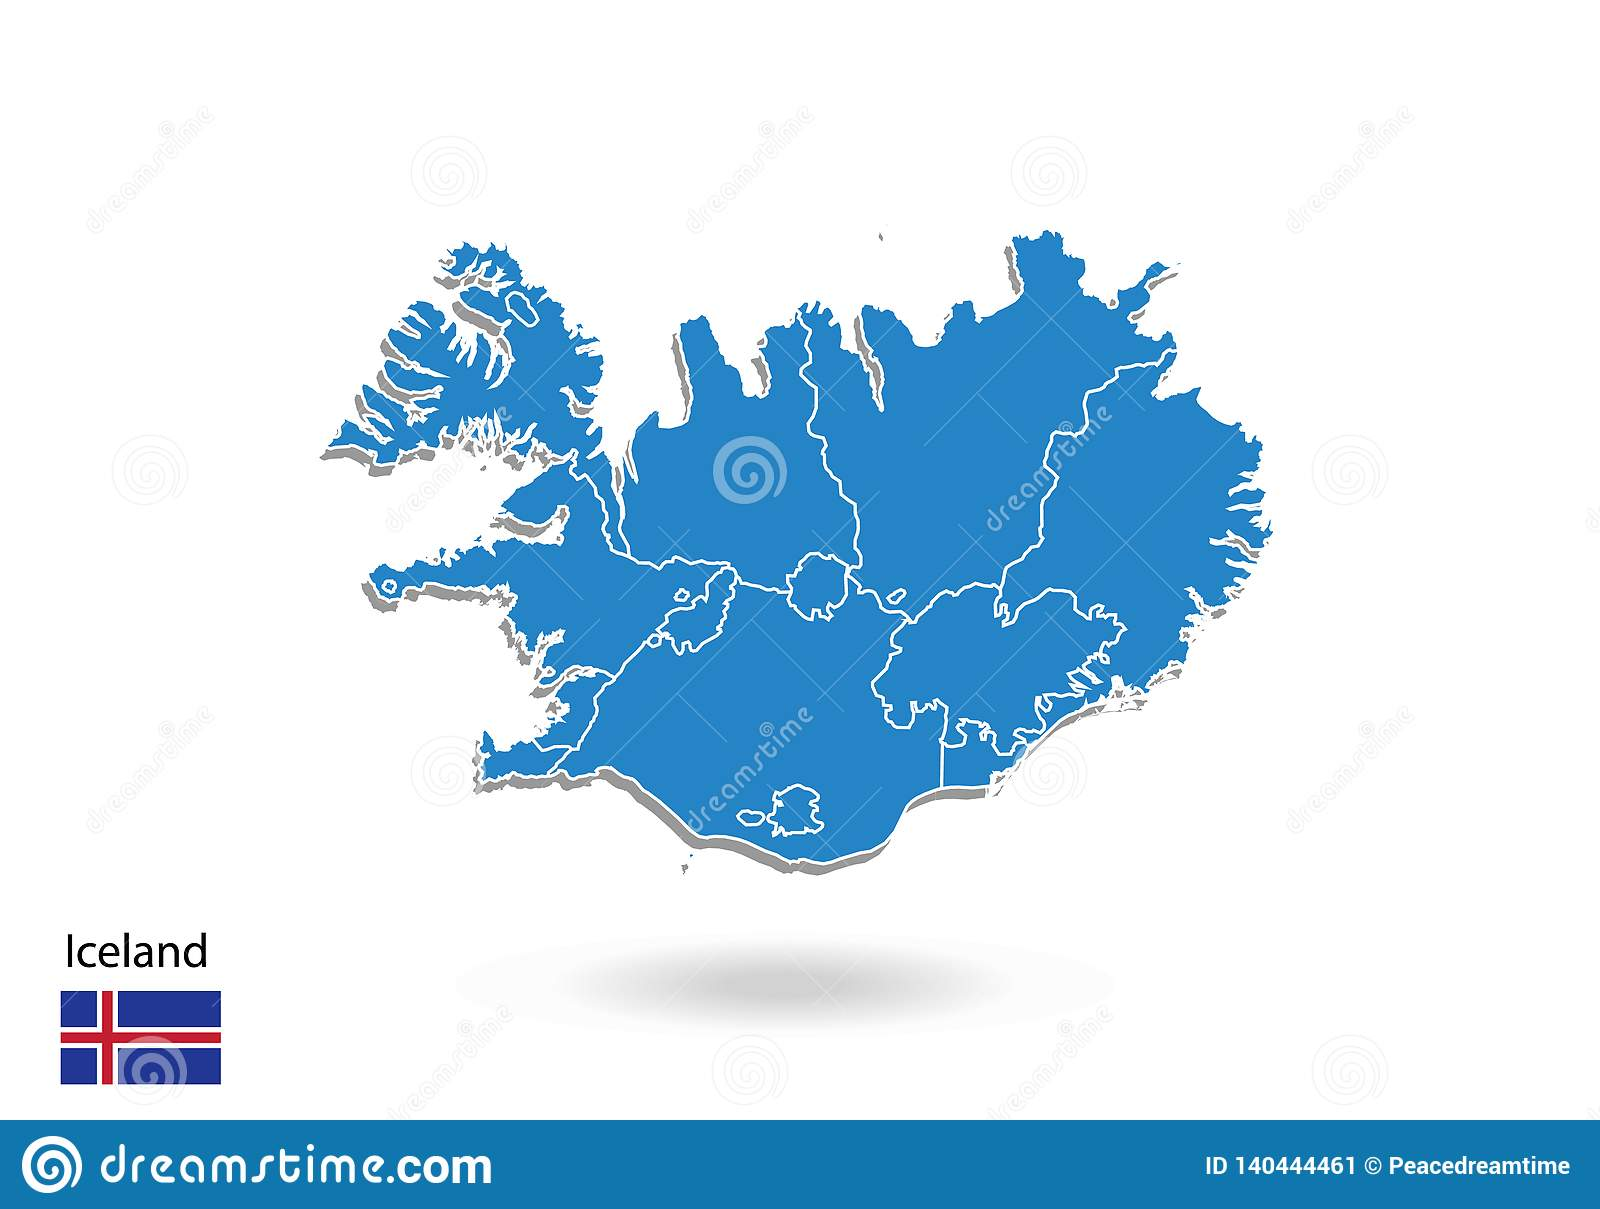 Iceland Map Design With 3D Style. Blue Iceland Map And ...